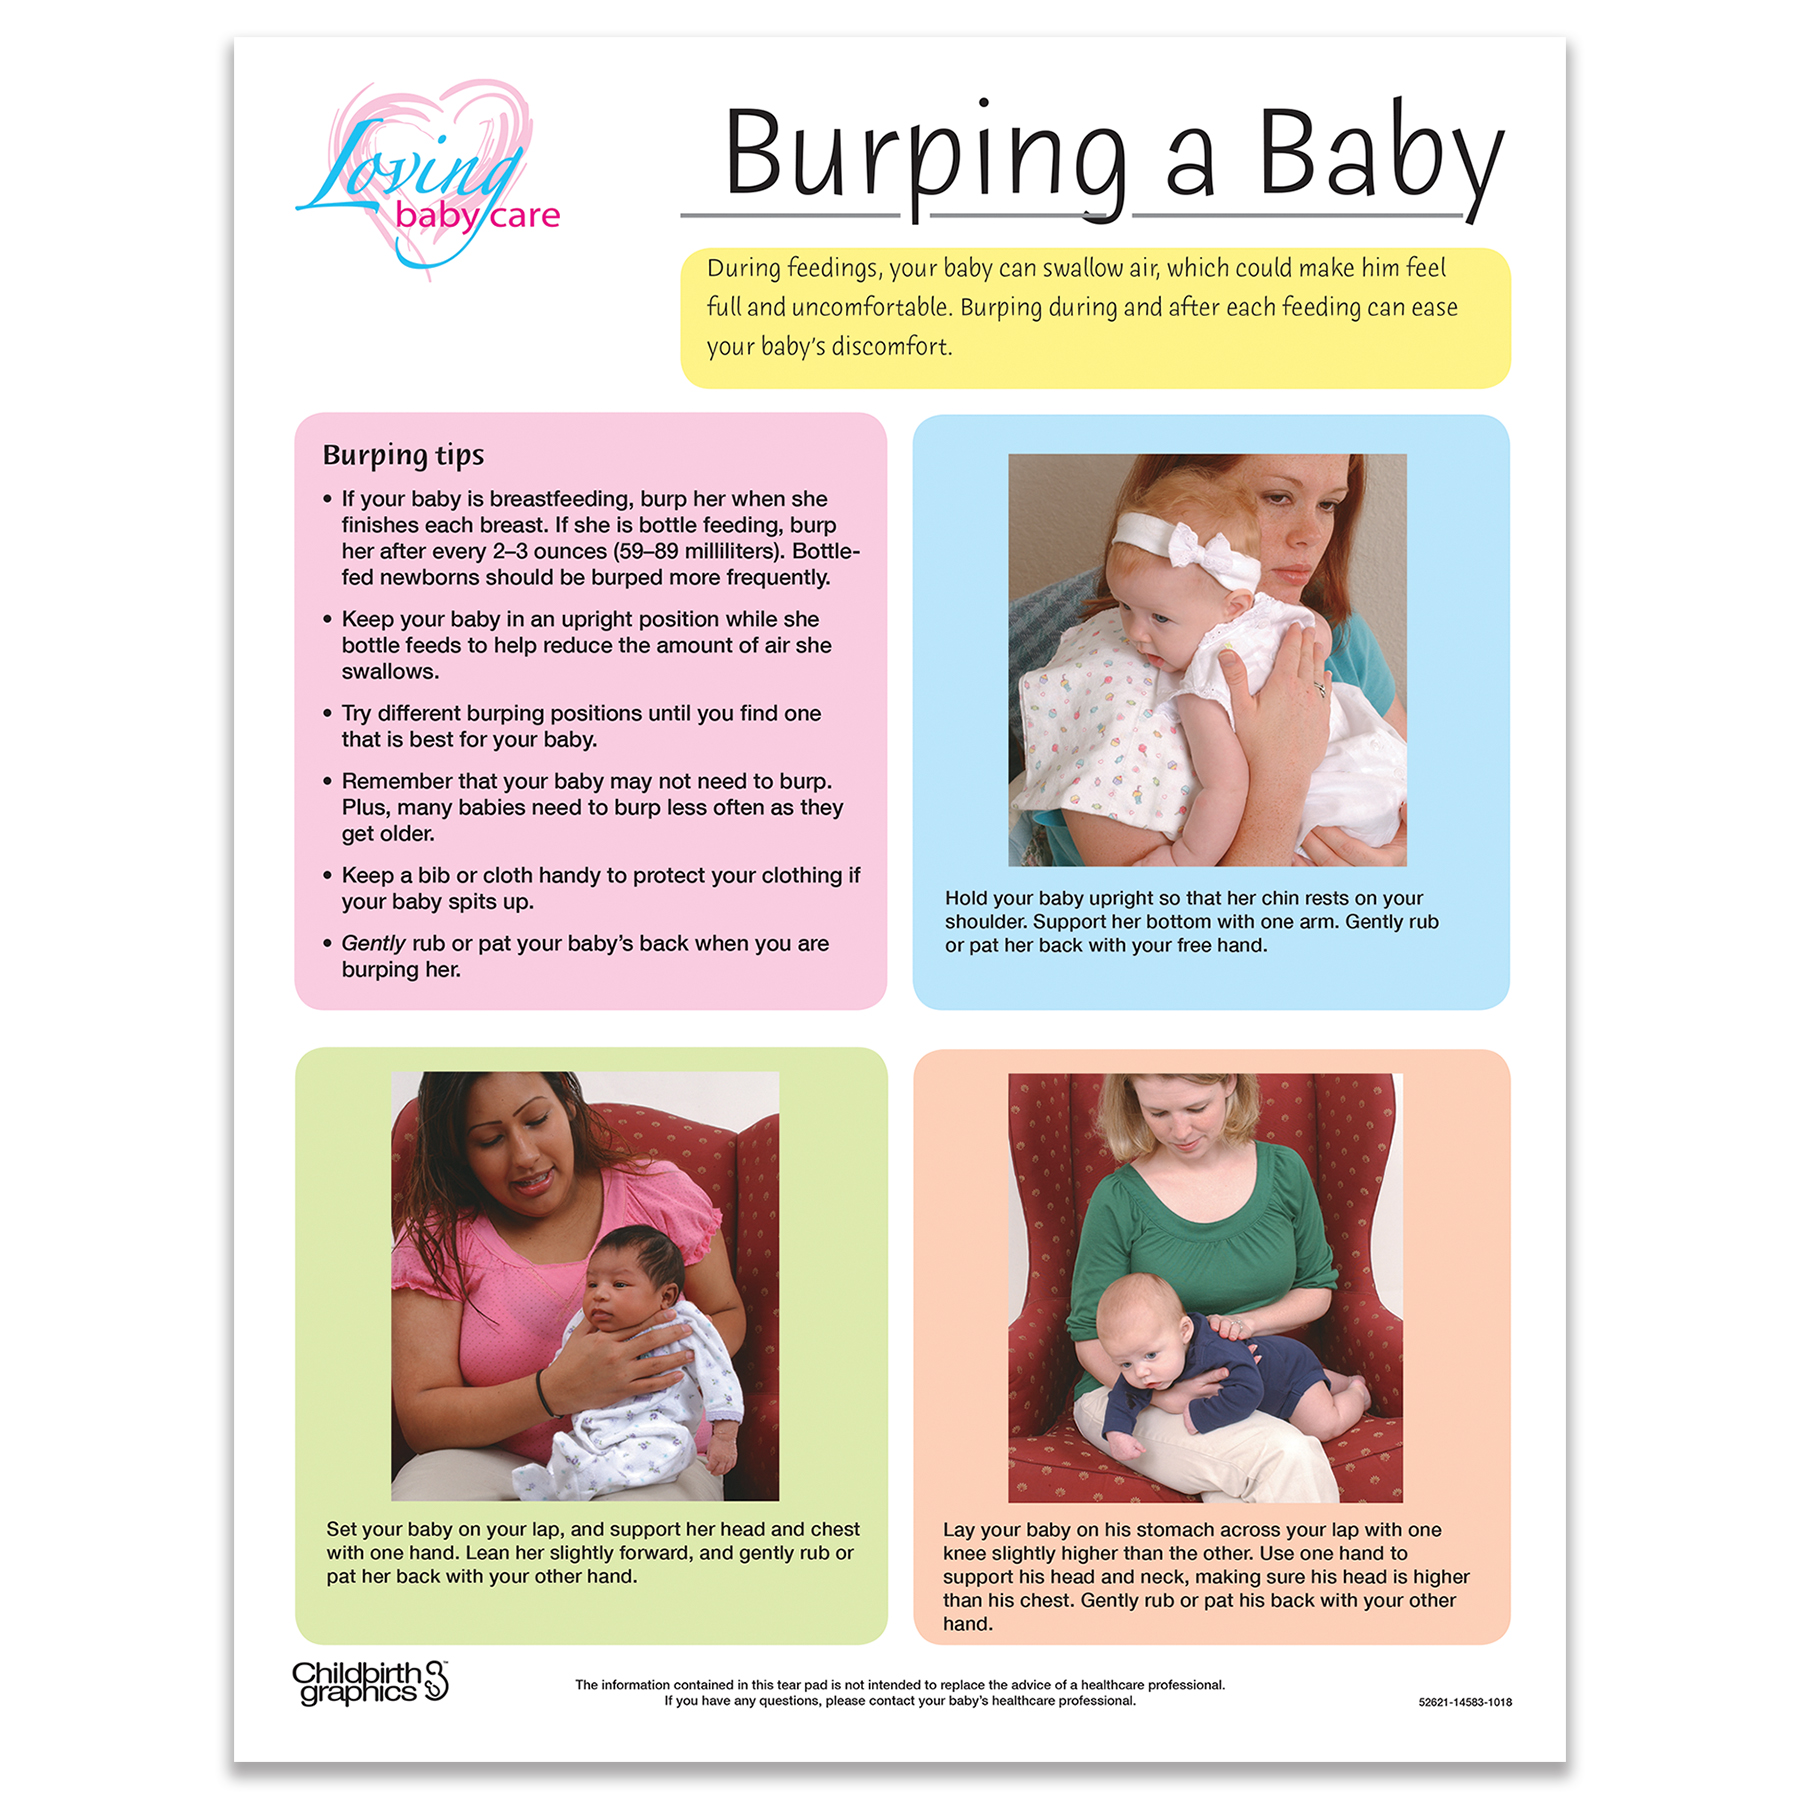 Burping a baby full-color tear pad, color blocks list tips and positions for burping, Childbirth Graphics 52621